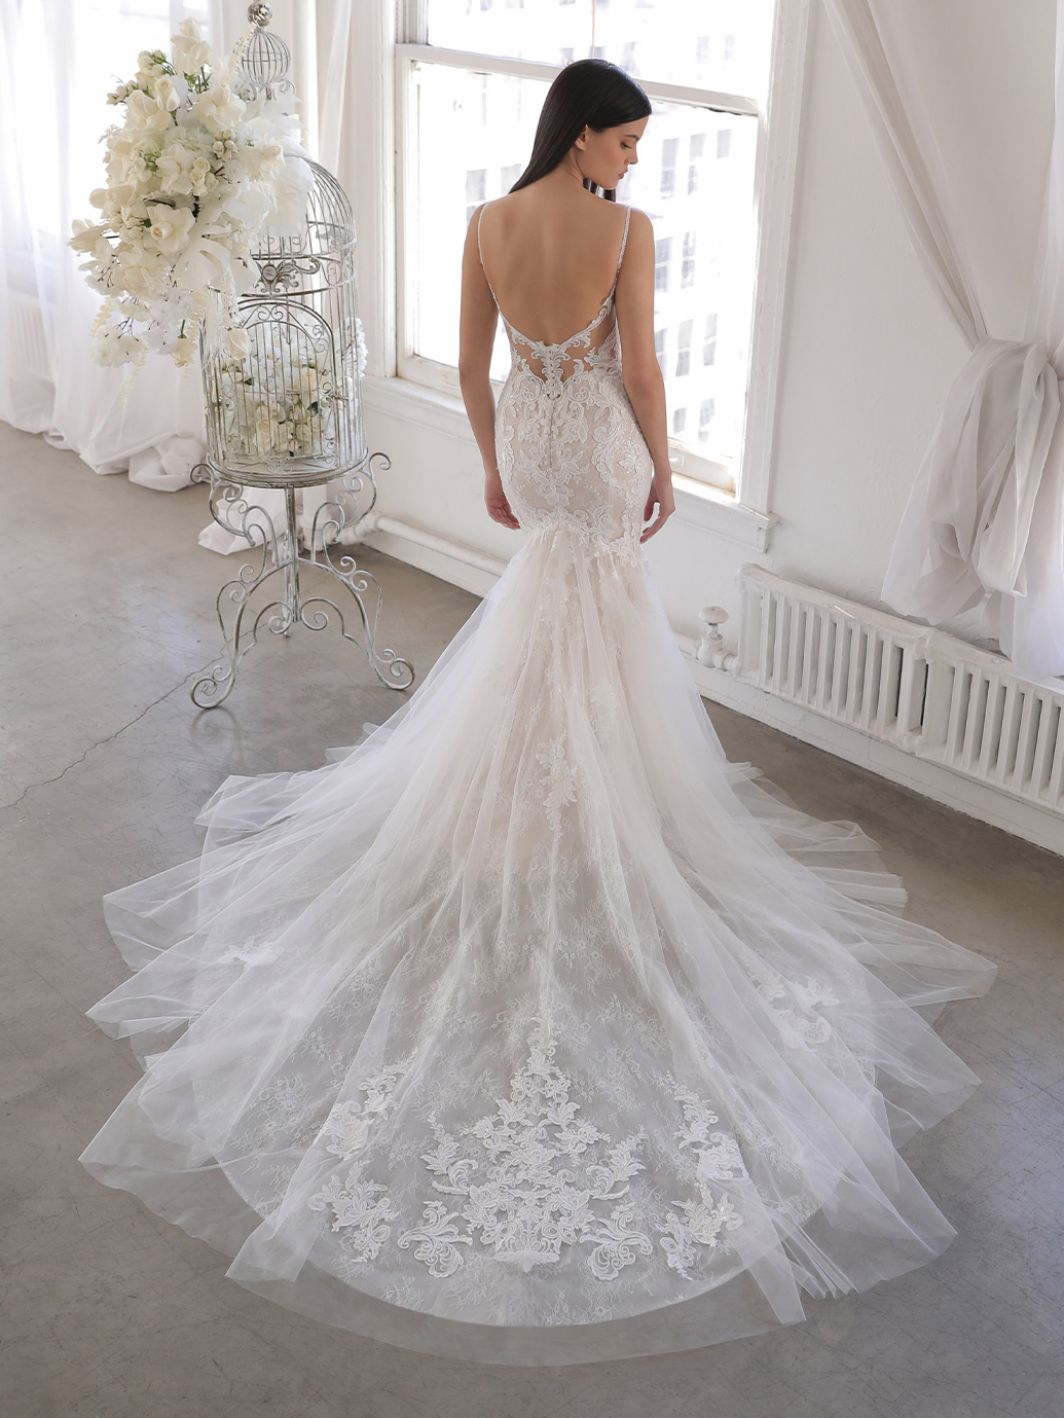 oaklyn wedding dress from Blue by Enzoani available at Emily Bridalwear Sheffield Yorkshire